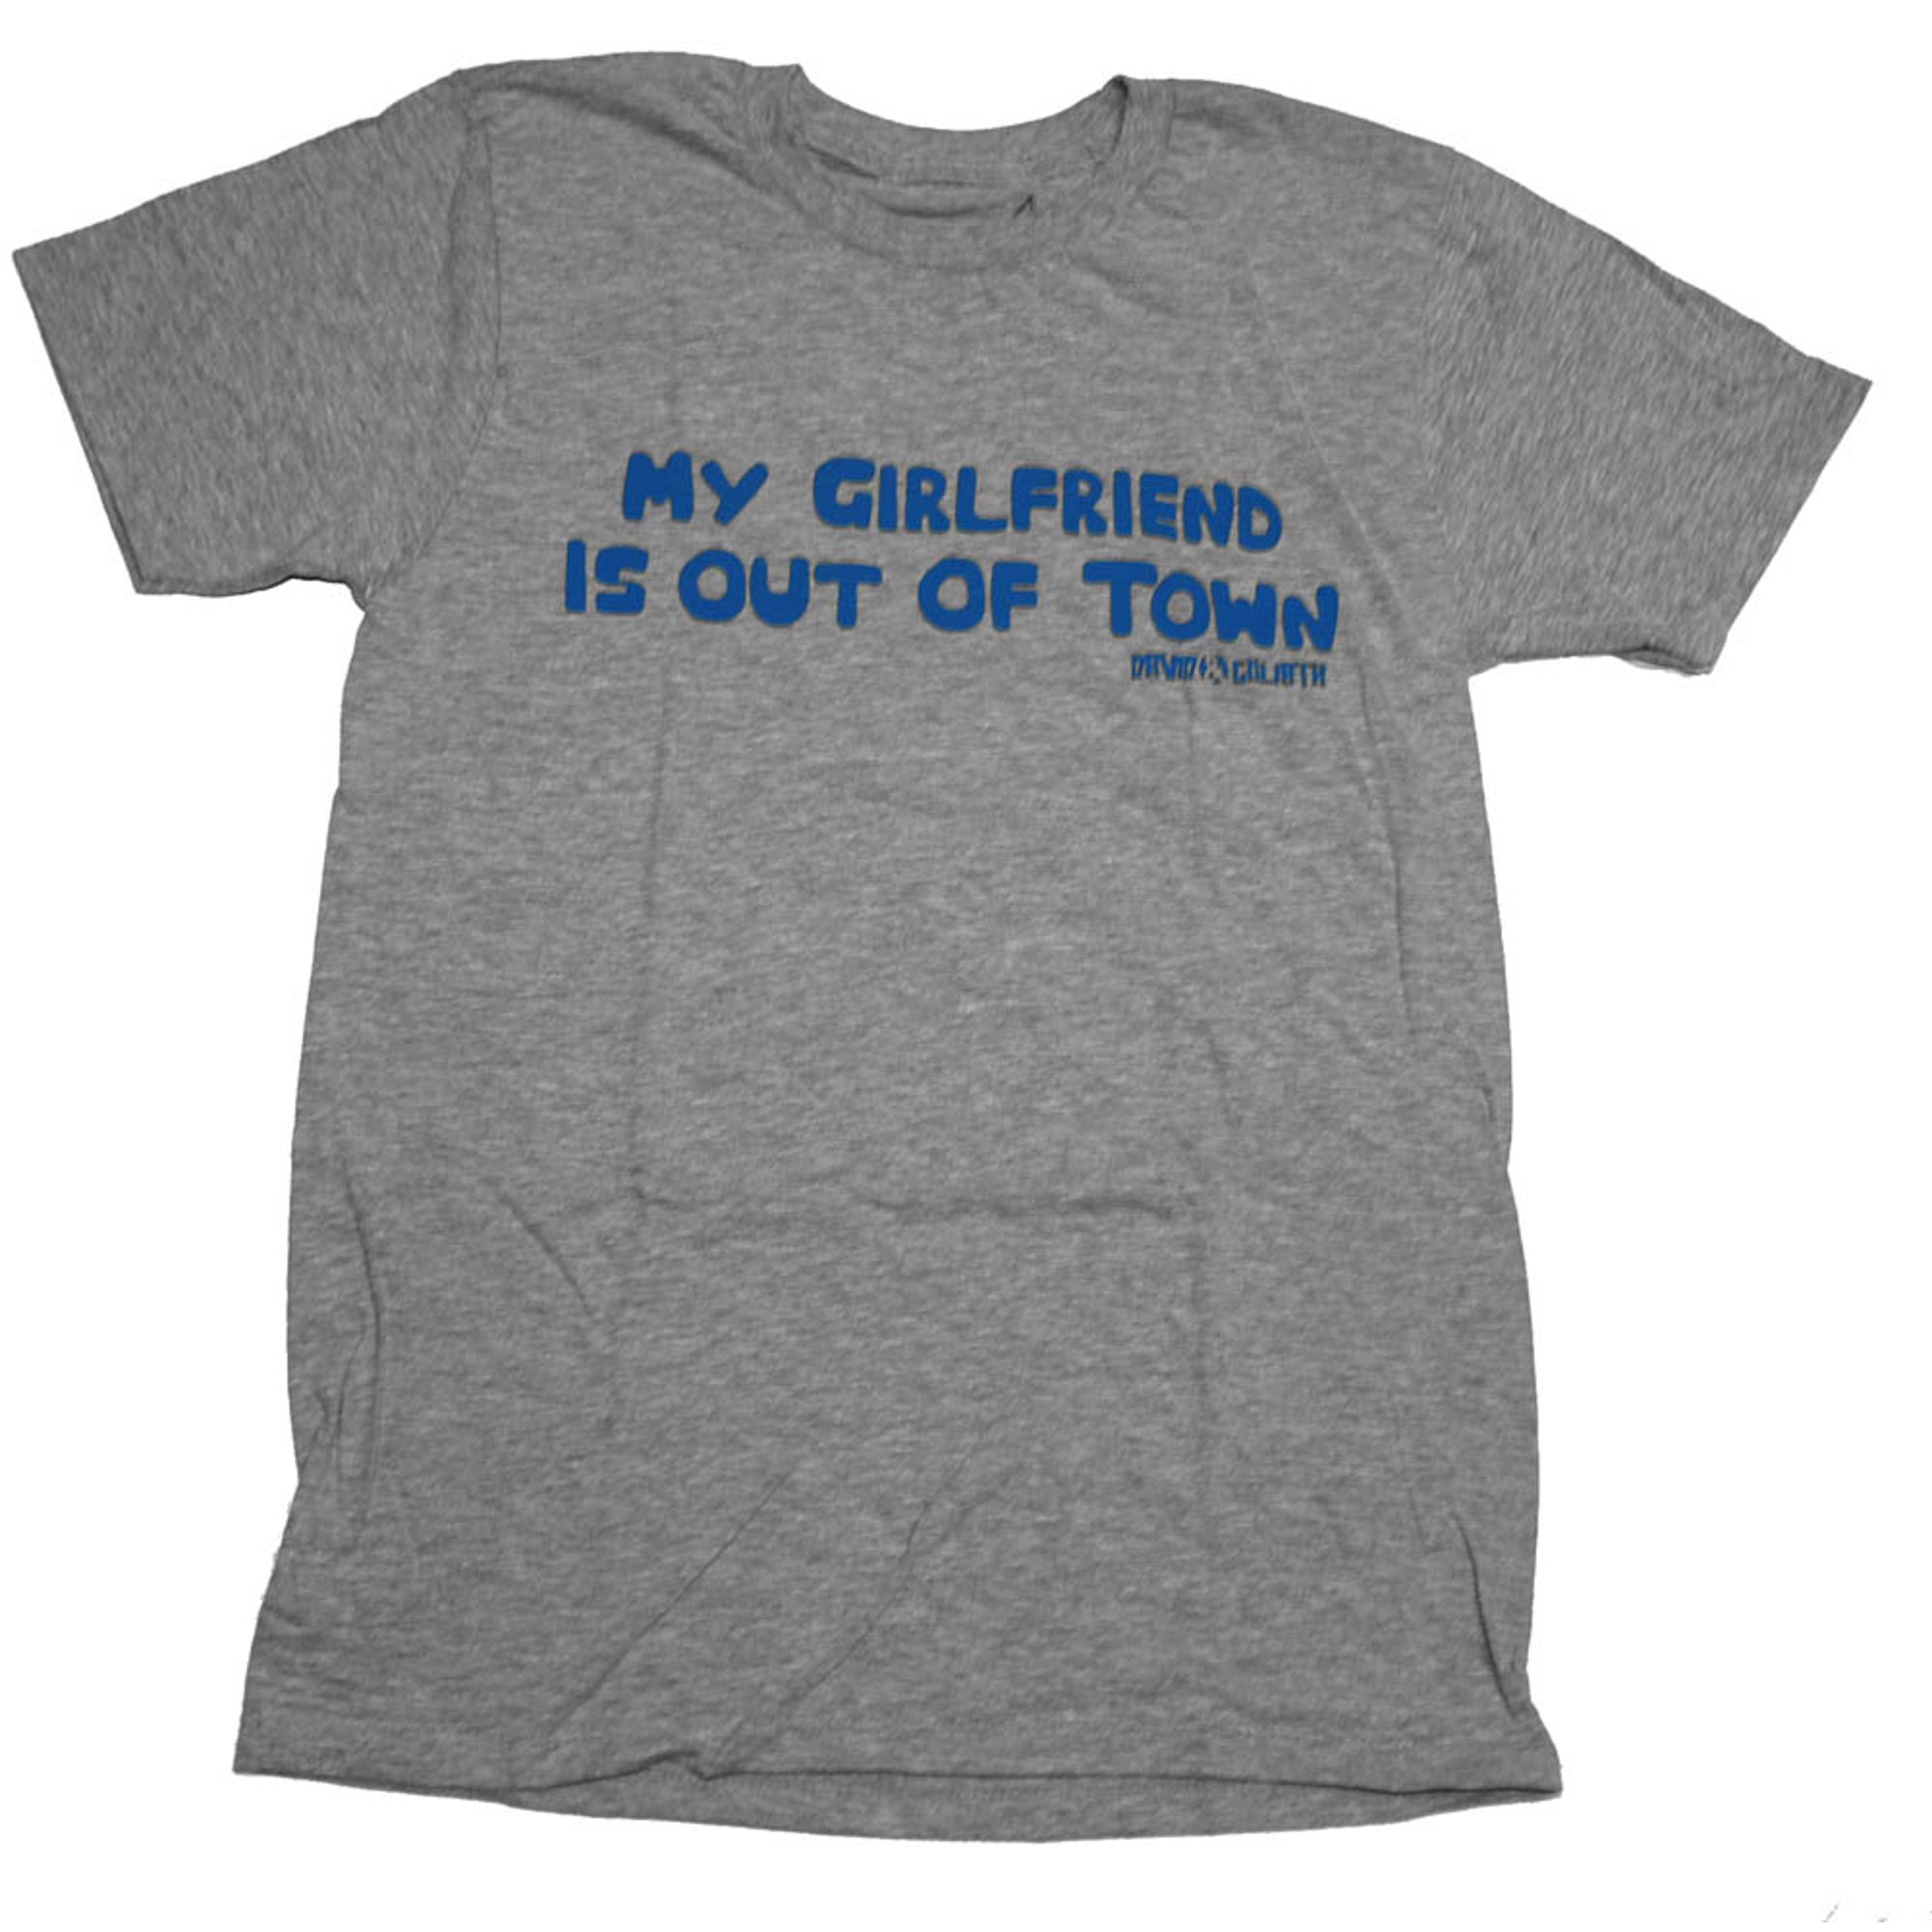 31f41df9e My Girlfriend Is Out Of Town David & Goliath Brand Funny T-Shirt Tee ...